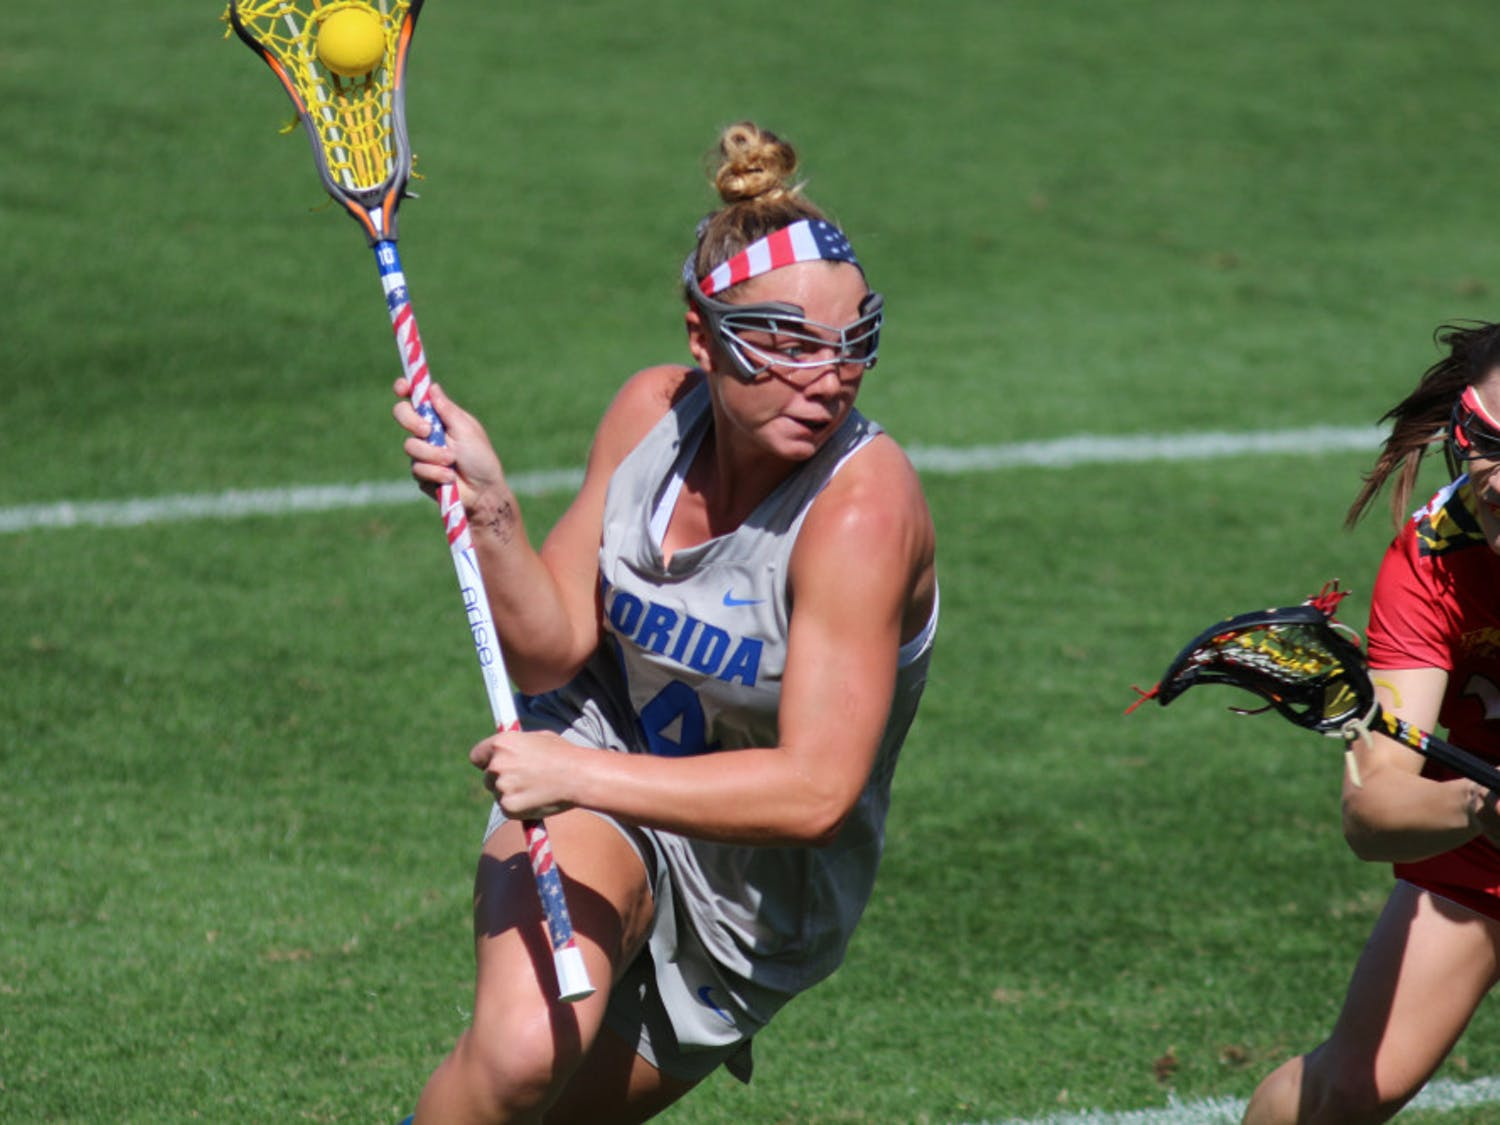 Junior attacker Lindsey Ronbeck has 10 goals and three assists through the first three games of the season.